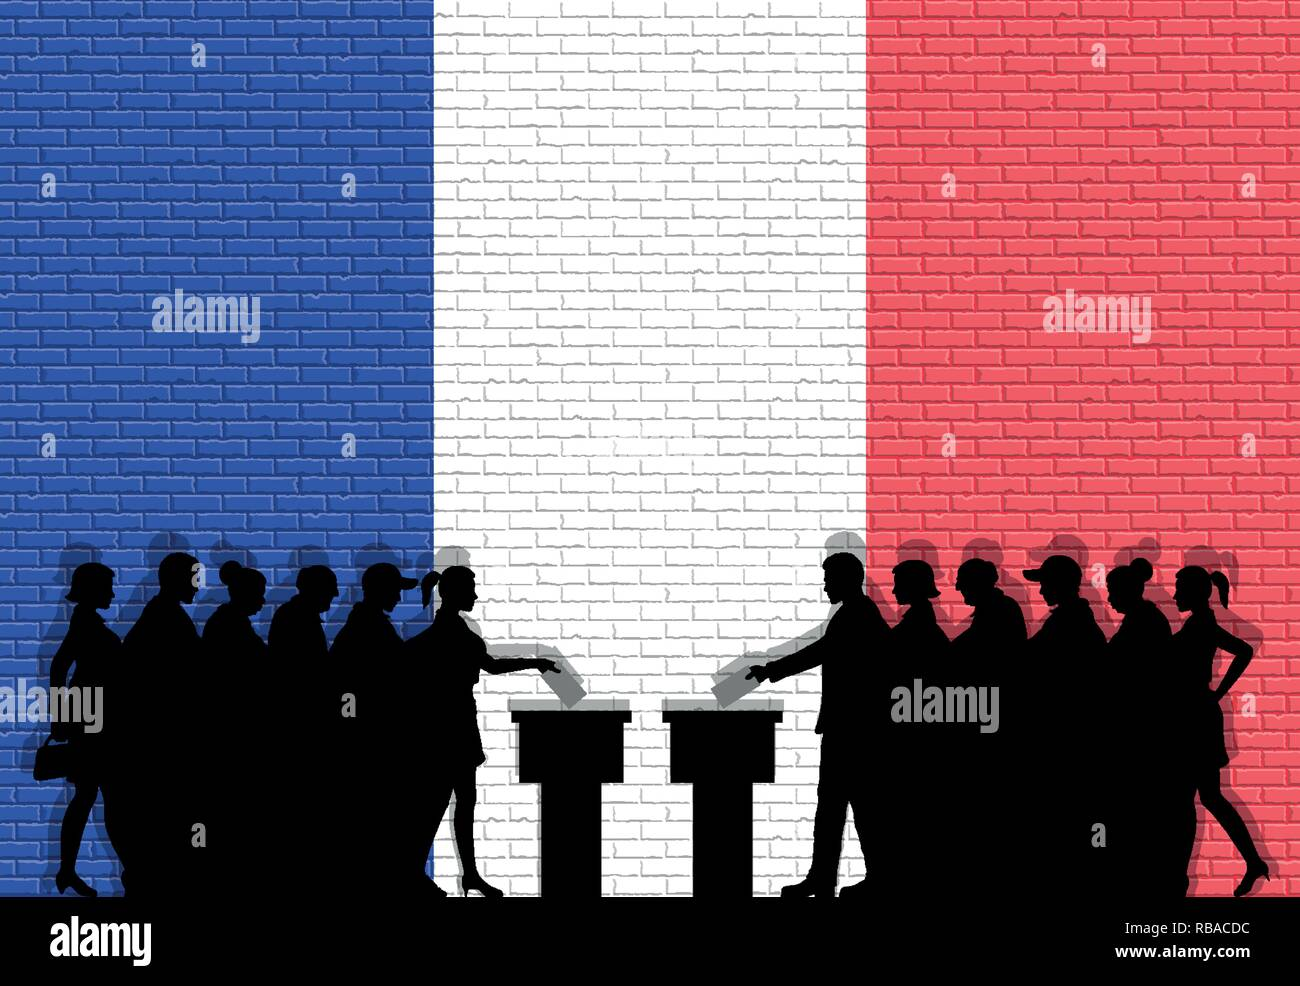 French voters crowd silhouette in election with France flag graffiti in front of brick wall. All the silhouette objects, icons and background are in d - Stock Vector